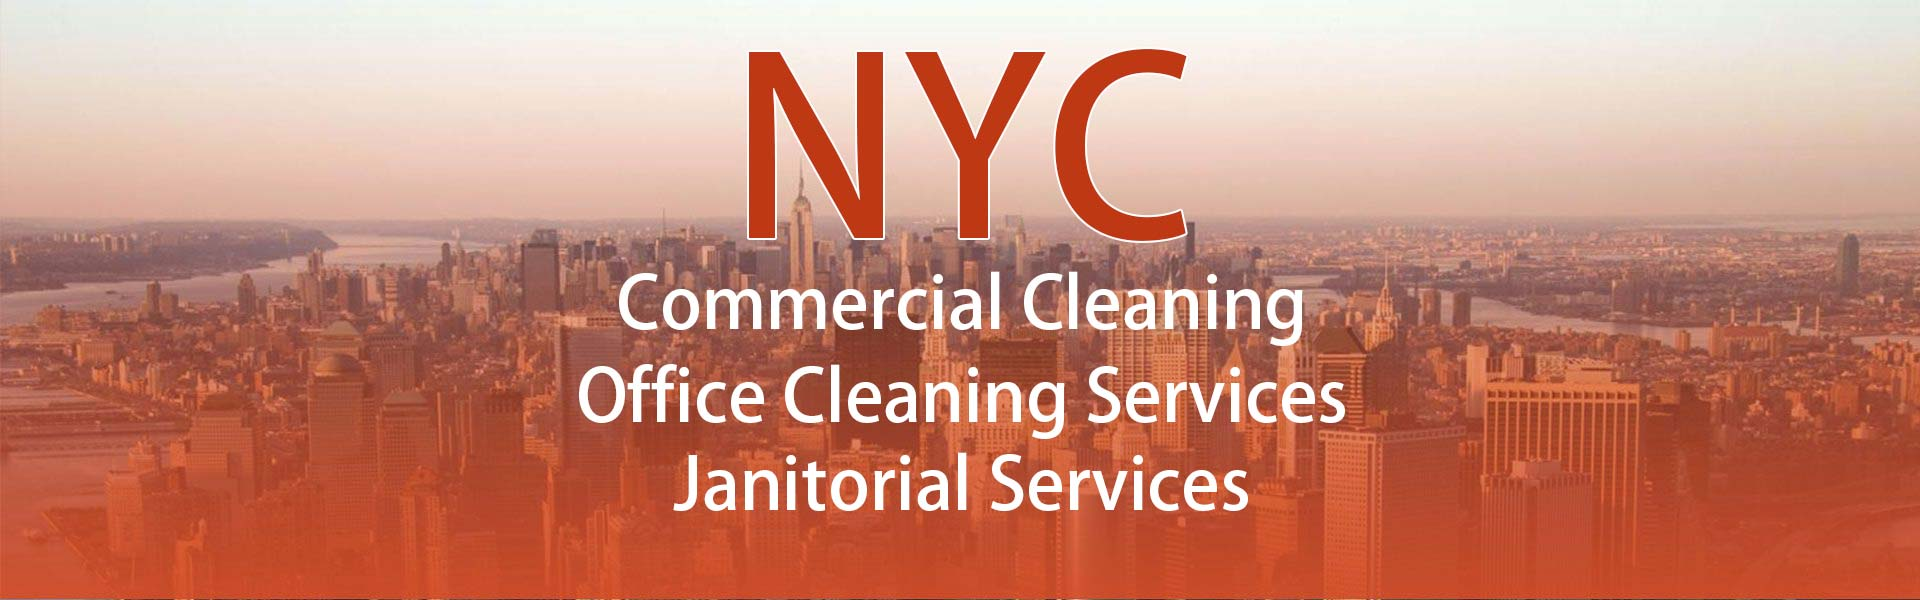 Commercial Office Cleaning Business NYC